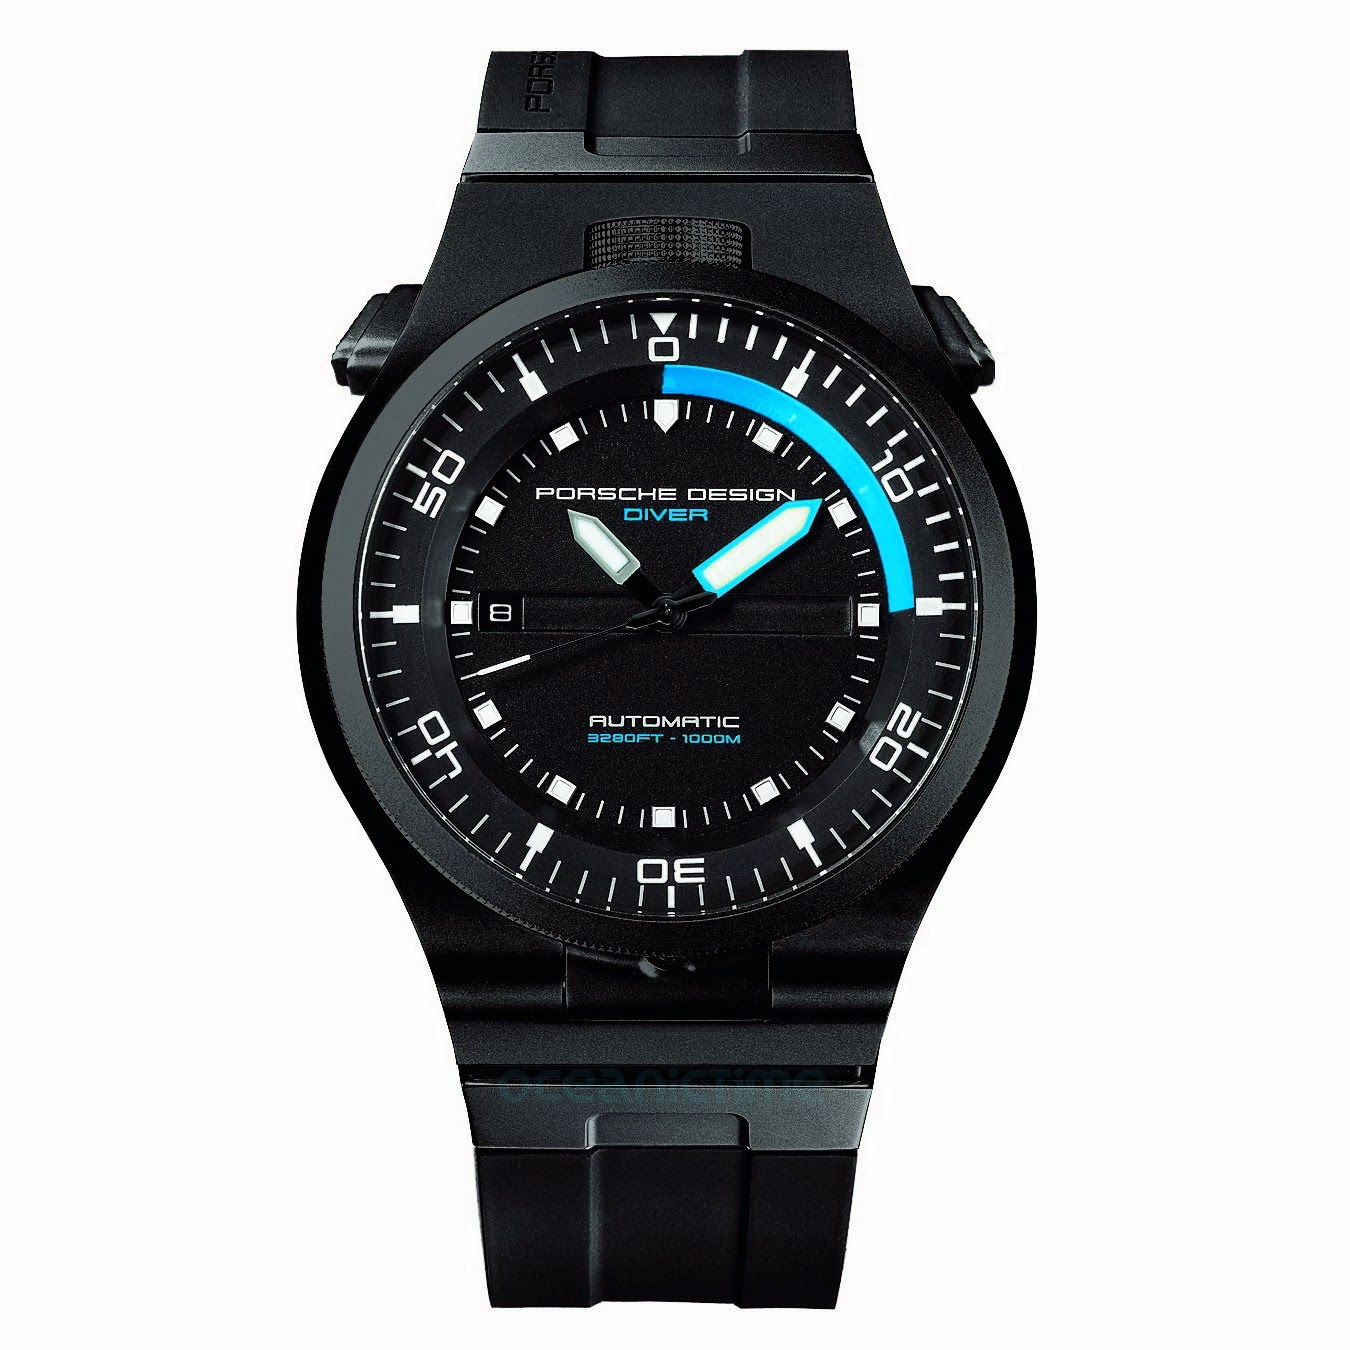 swiss design watches the p 6780 diver watch from porsche design. Black Bedroom Furniture Sets. Home Design Ideas